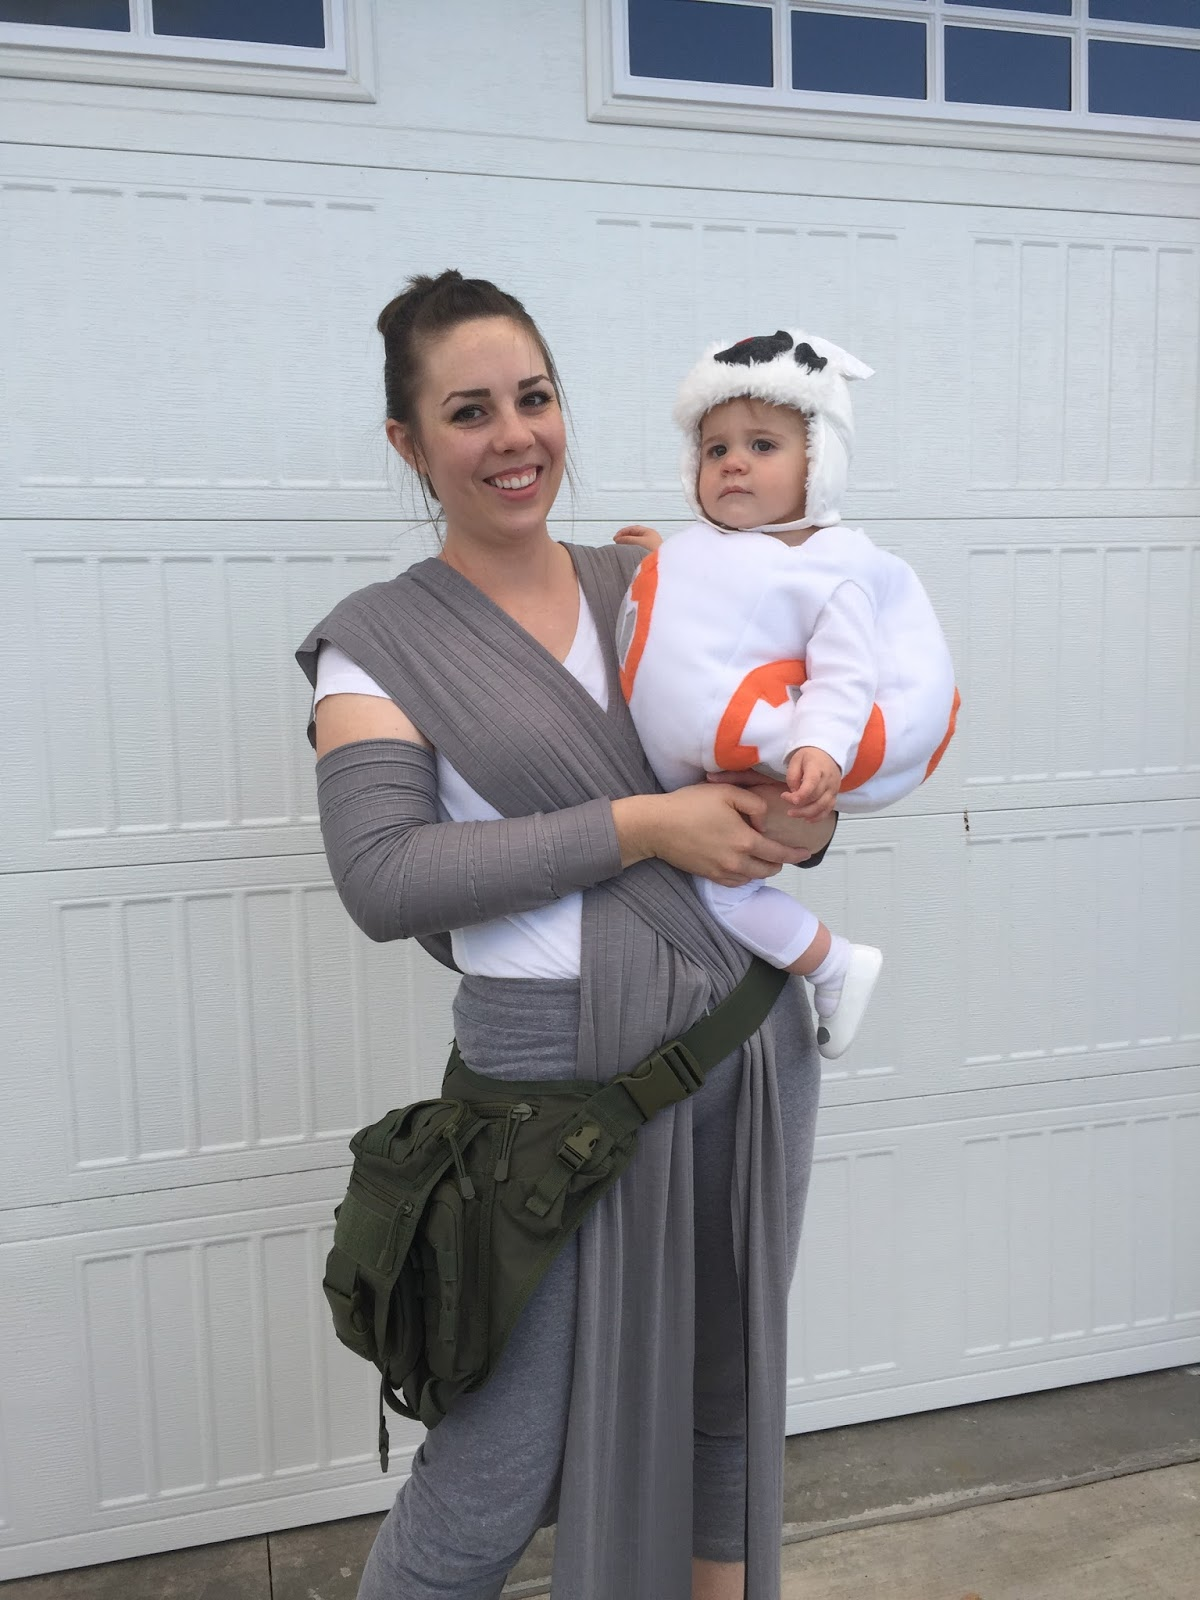 I Chose To Be Rey Because Shes So Bad A And Has Brown Hair Bought 2 Yards Of Jersey Fabric Cut Down On Costs It Into Two